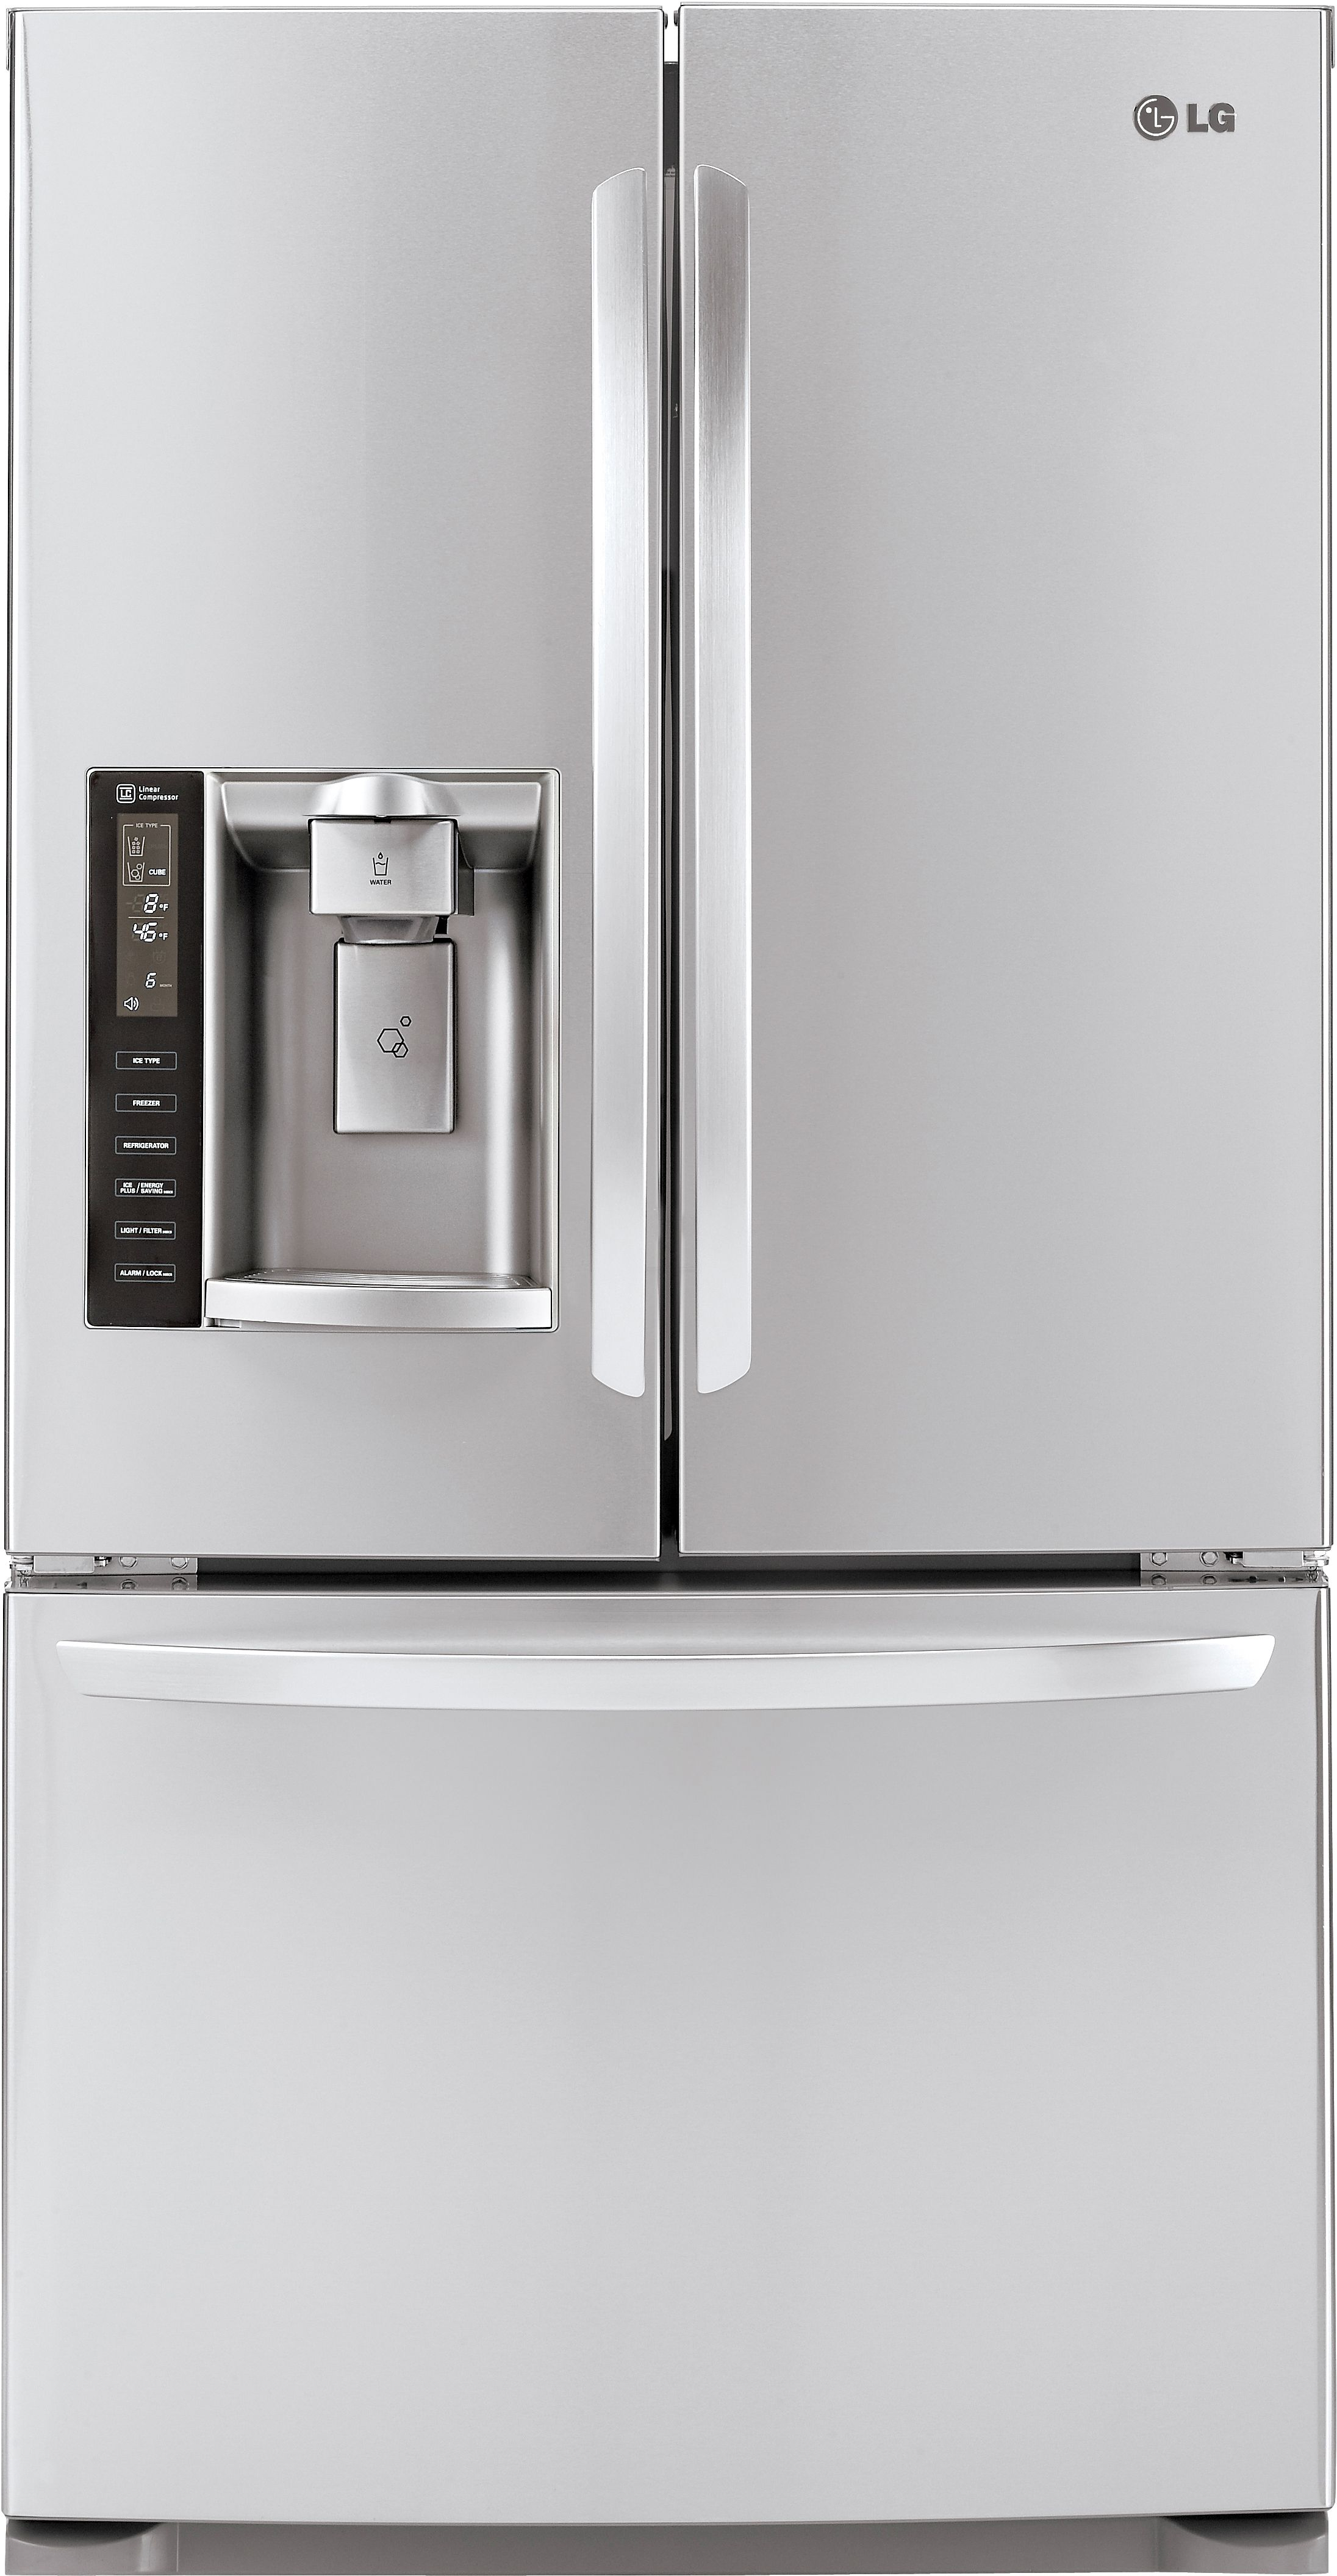 Lg 205 Cu Ft Counter Depth French Door Refrigerator Stainless